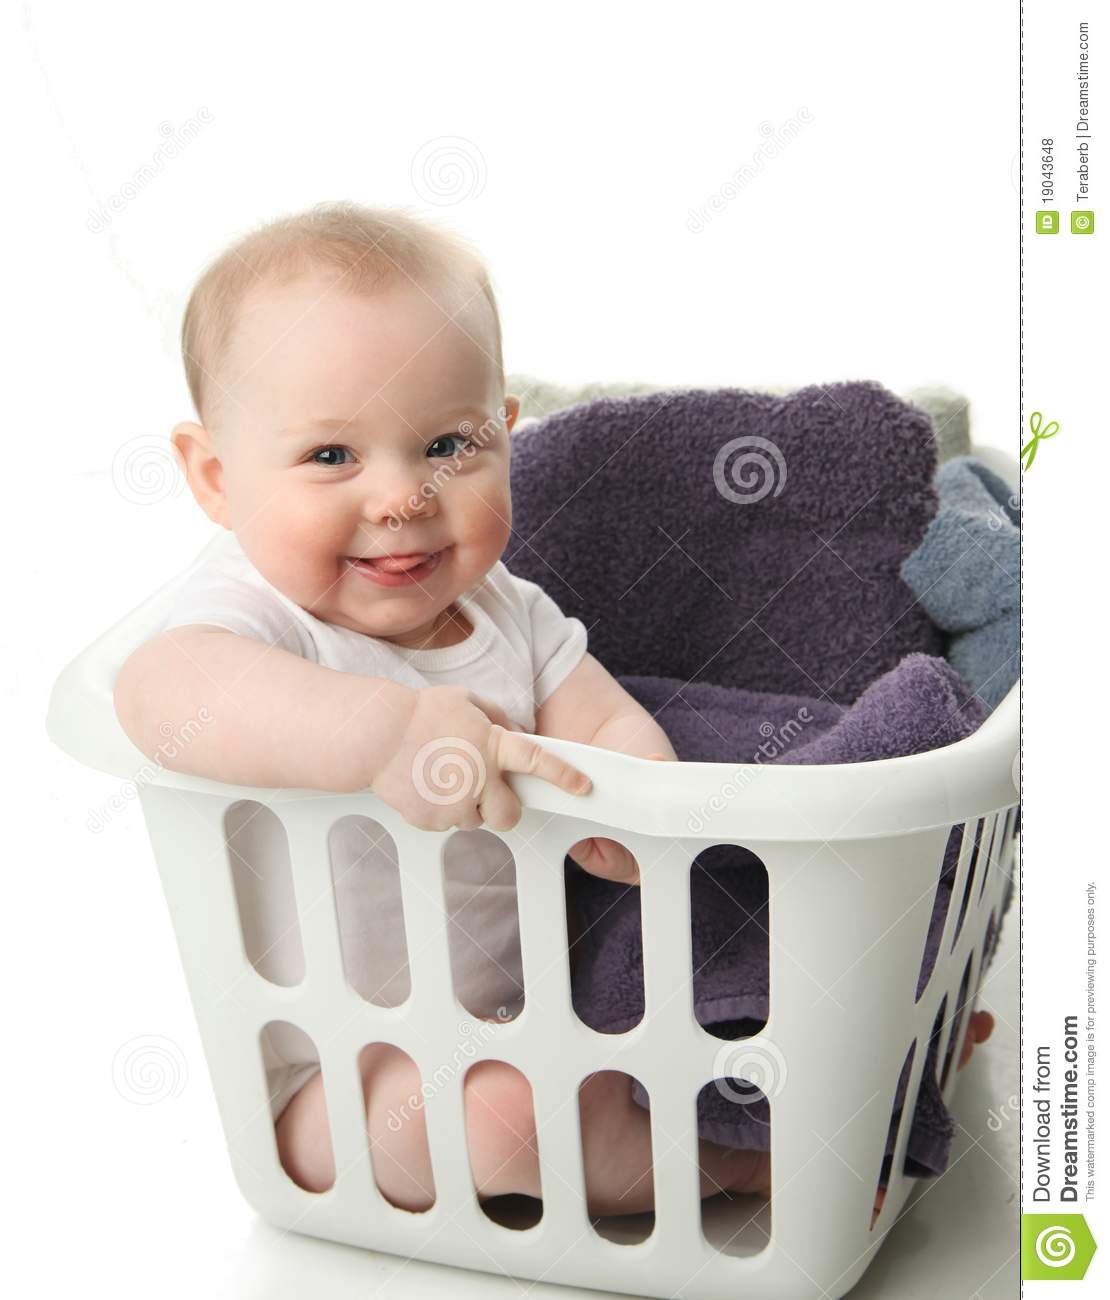 Baby Laundry Bin Baby In A Laundry Basket Royalty Free Stock Photos Image